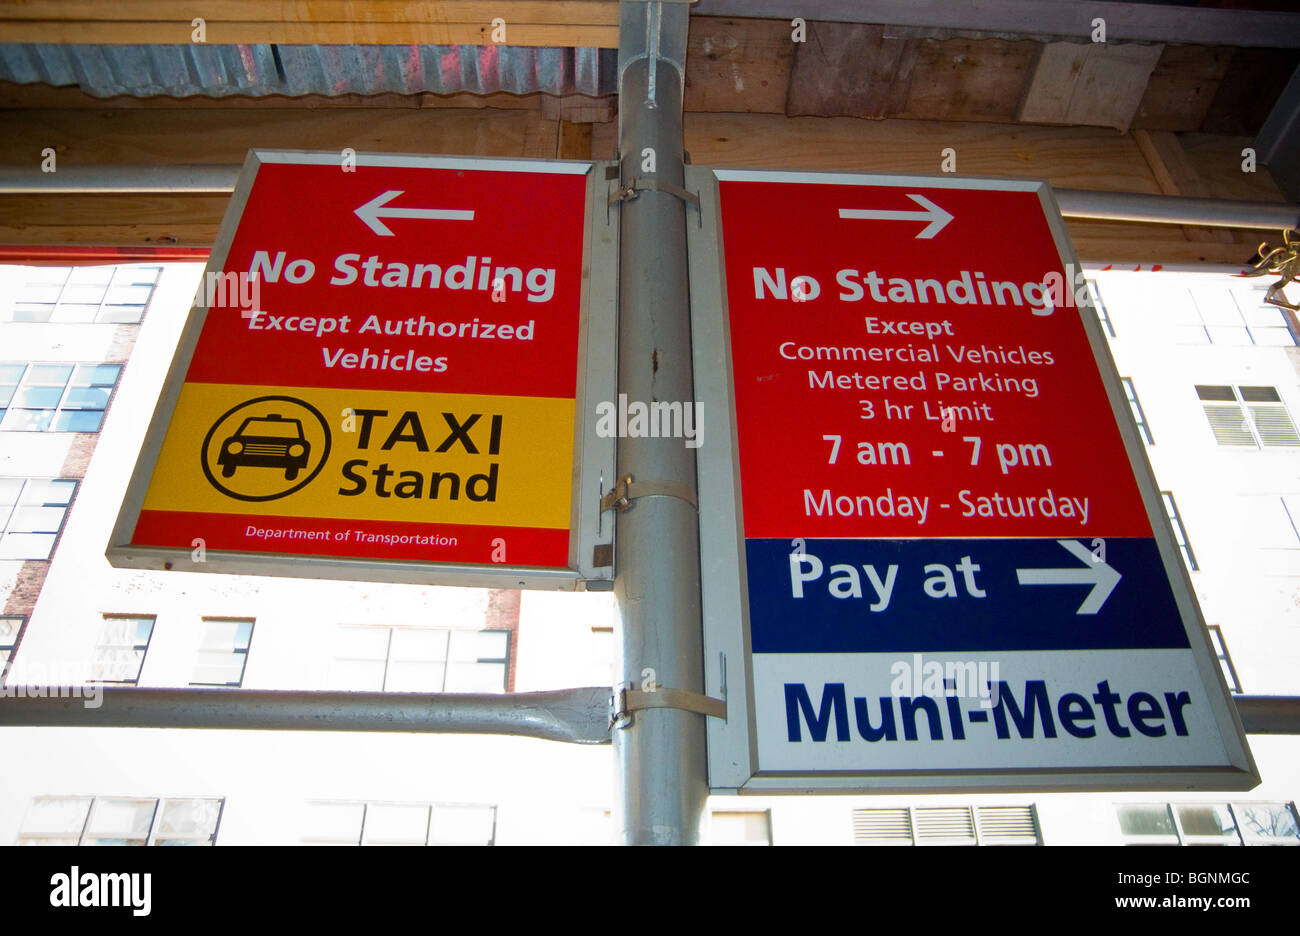 A set of No Standing signs designating a taxi stand and munimeter parking is seen in New York - Stock Image